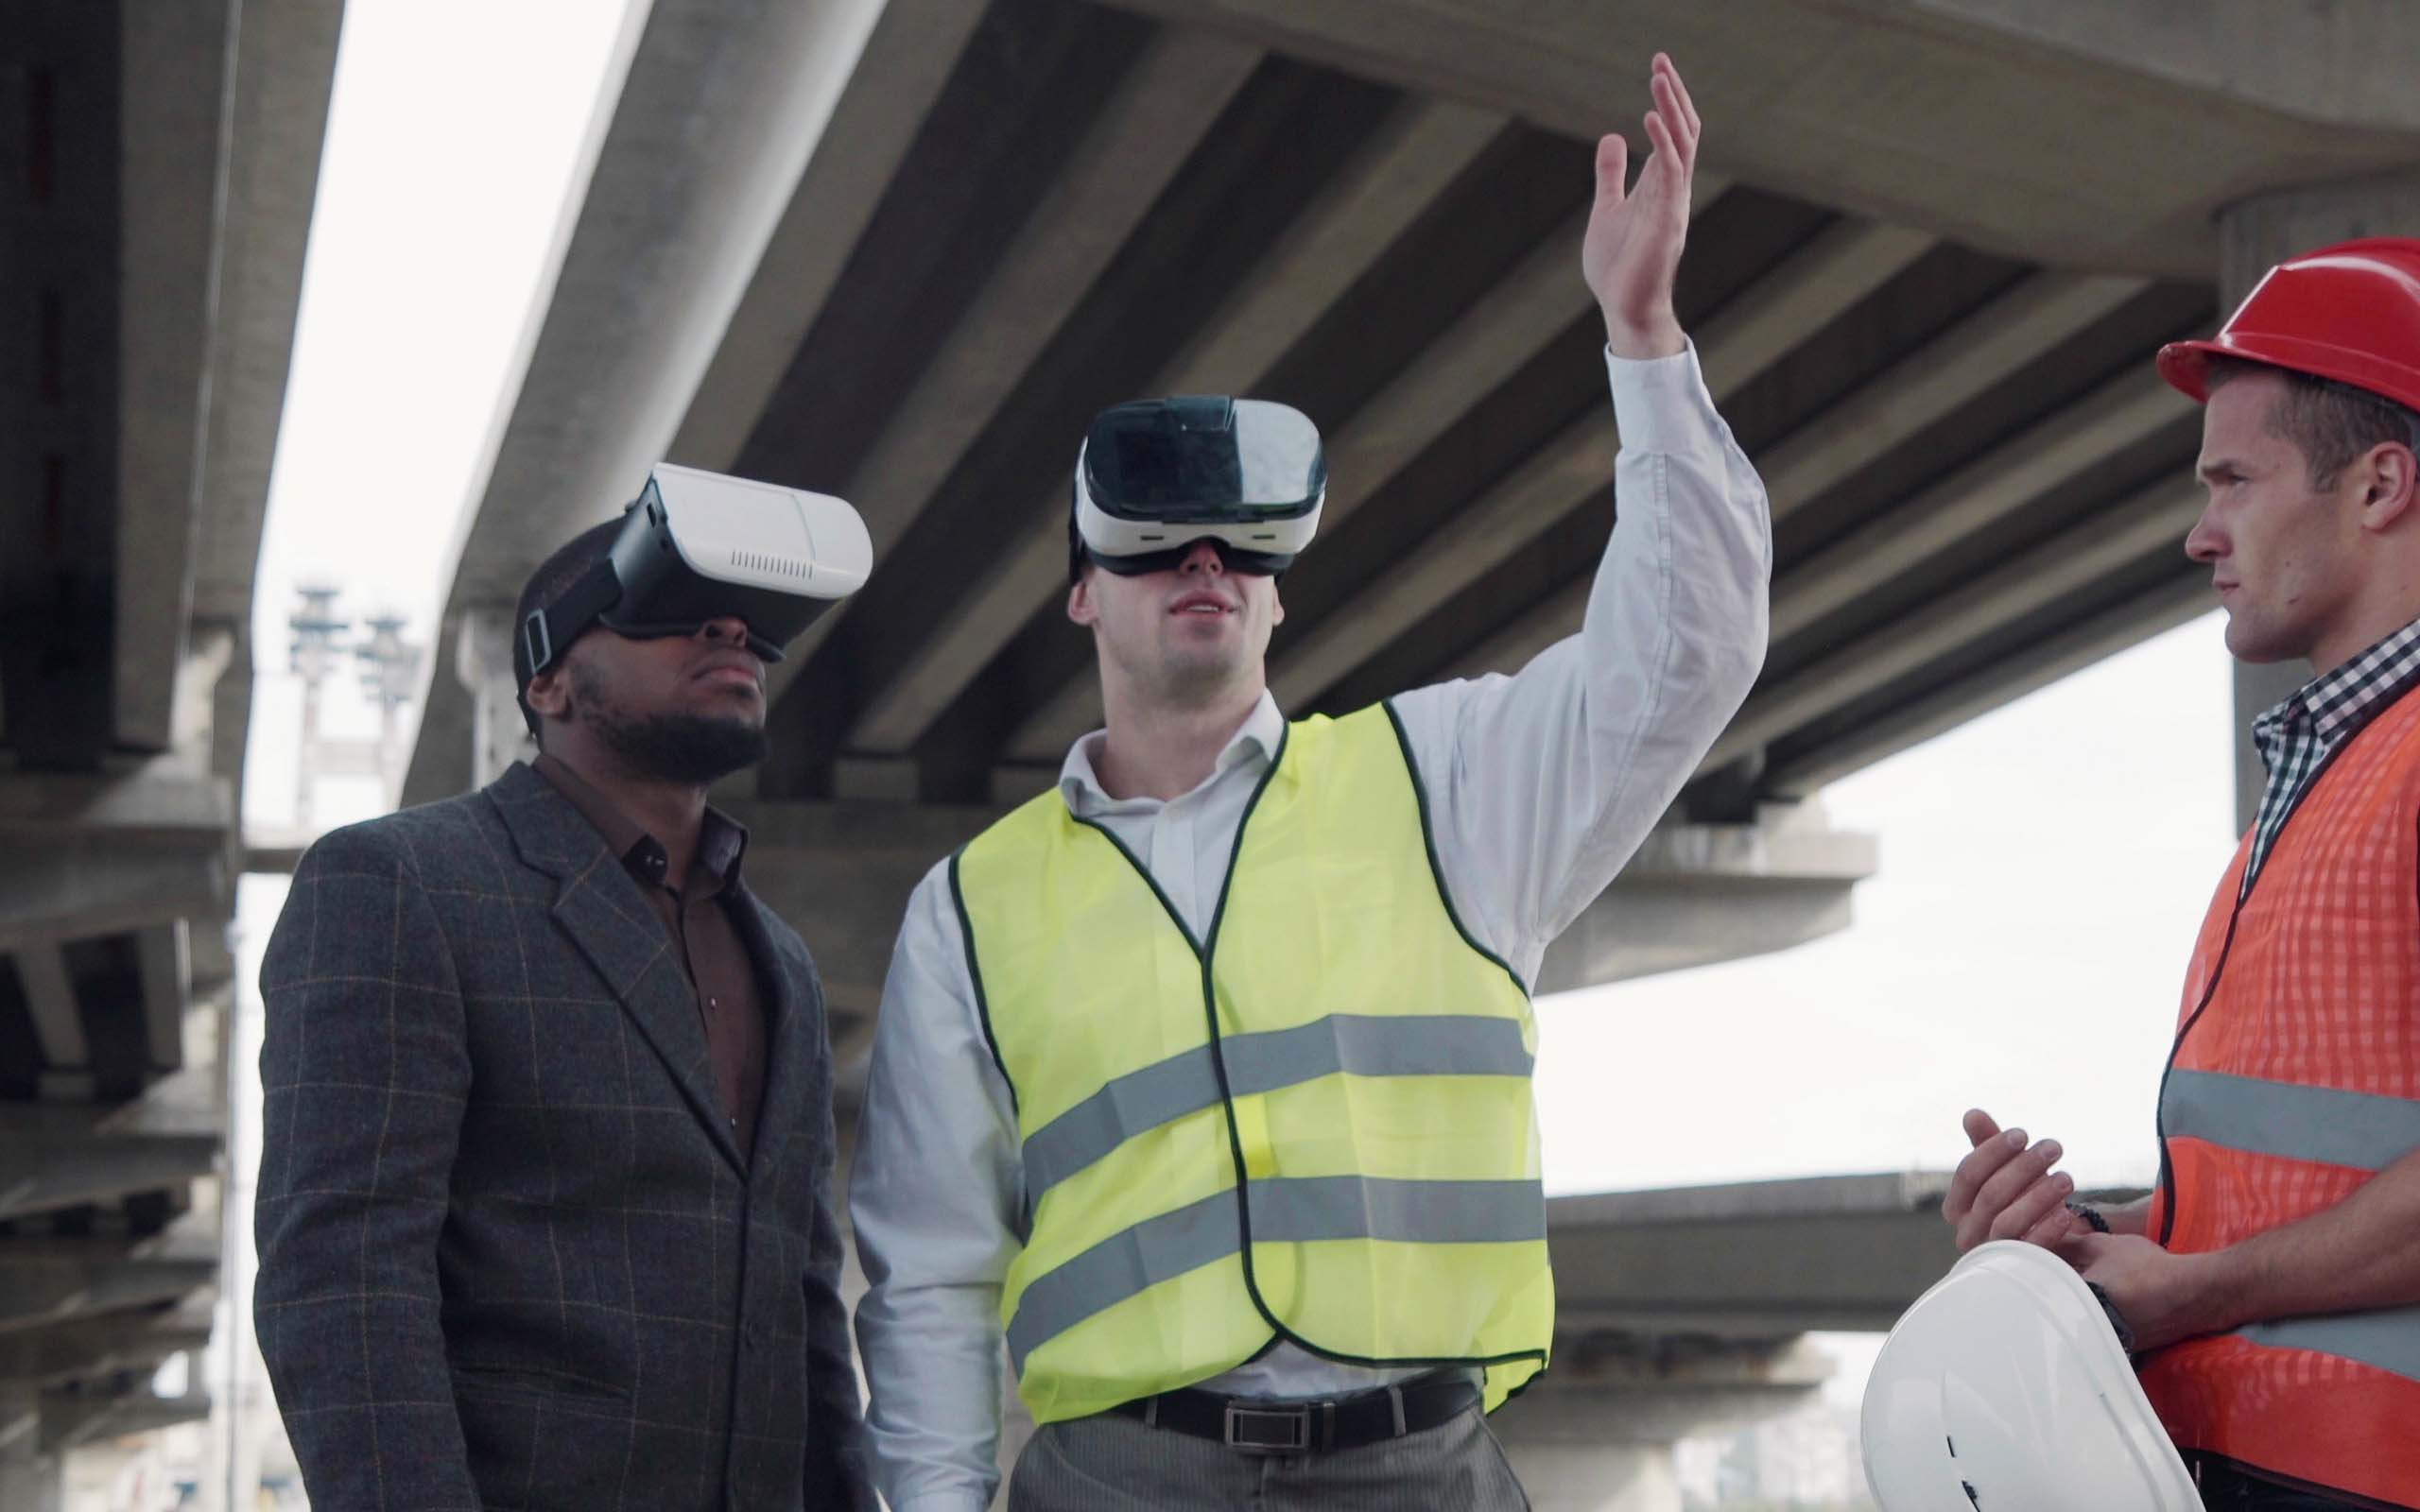 Virtual realityallows users to be transported into a virtual environment.